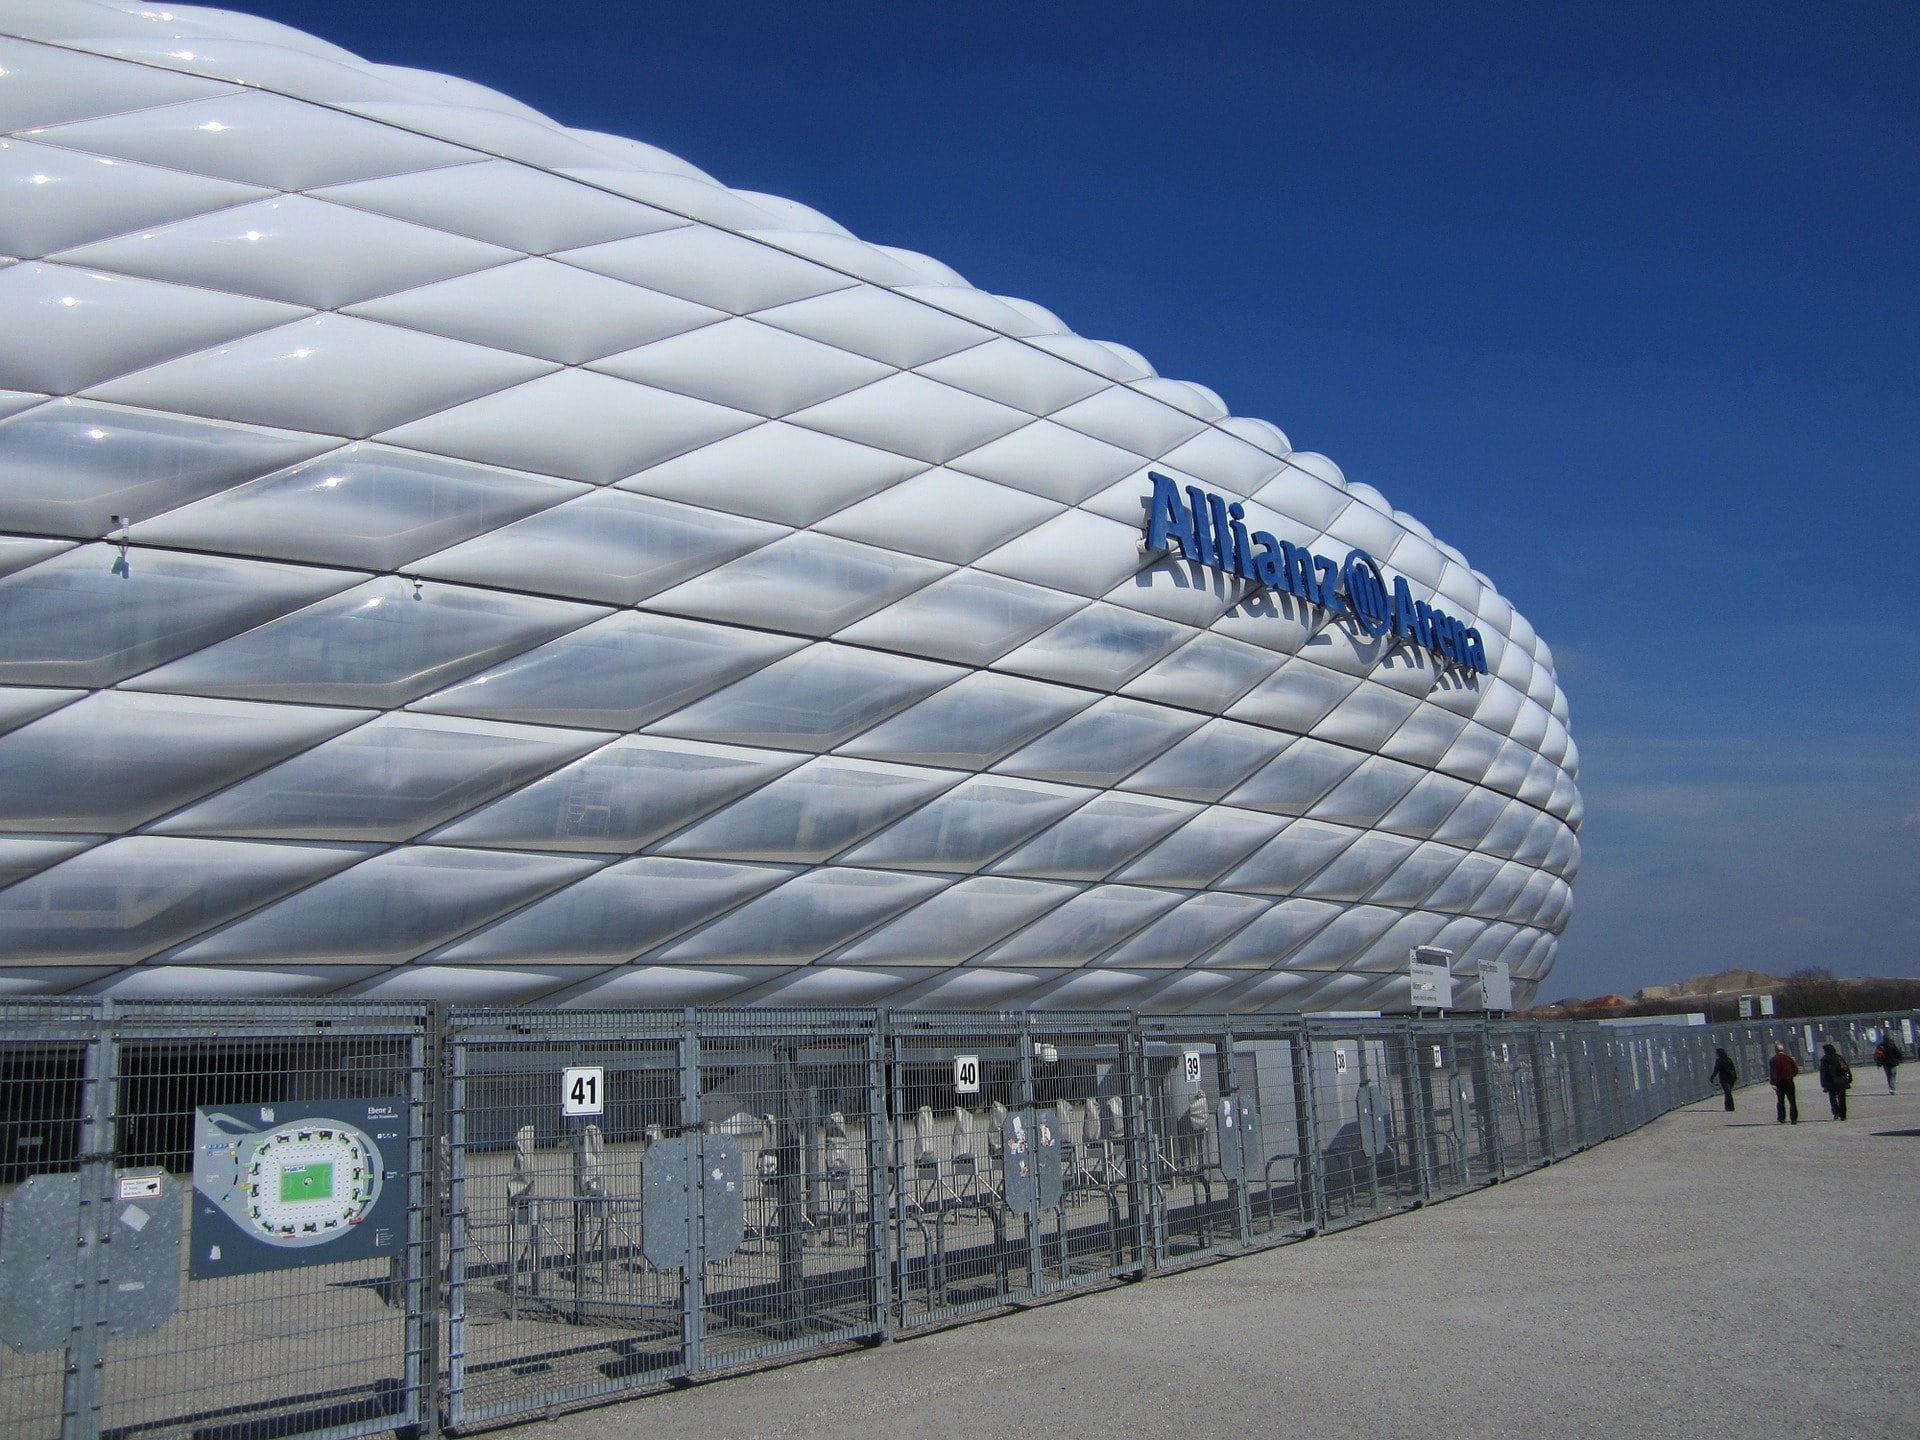 estadio allianz arena munich